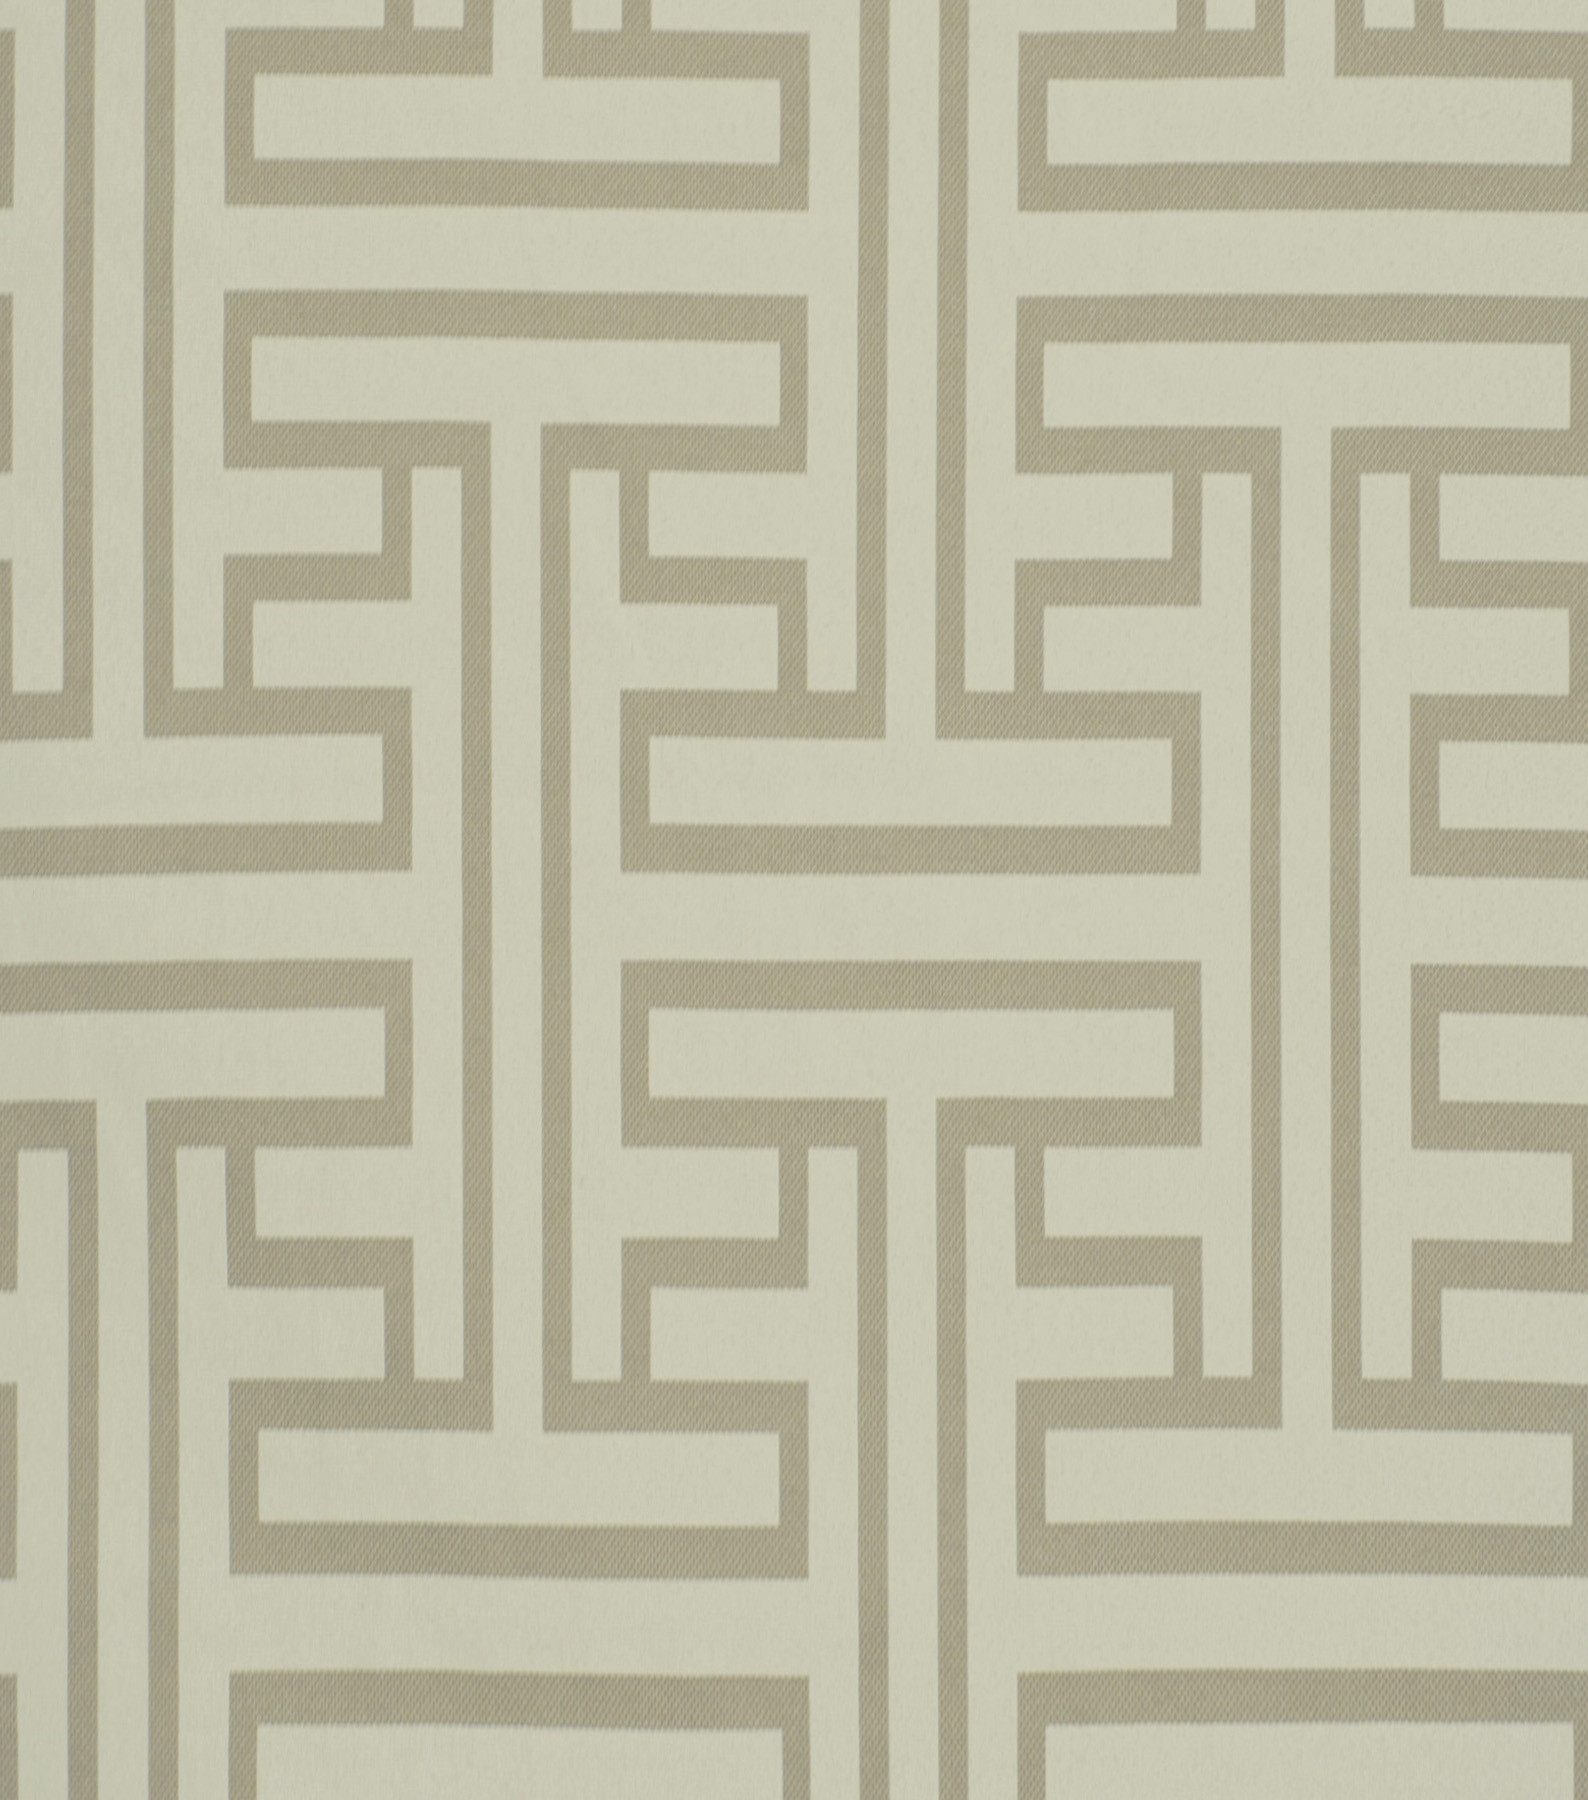 Home Decor 8\u0022x8\u0022 Fabric Swatch-Solid Fabric Robert Allen Ming Fret Taupe